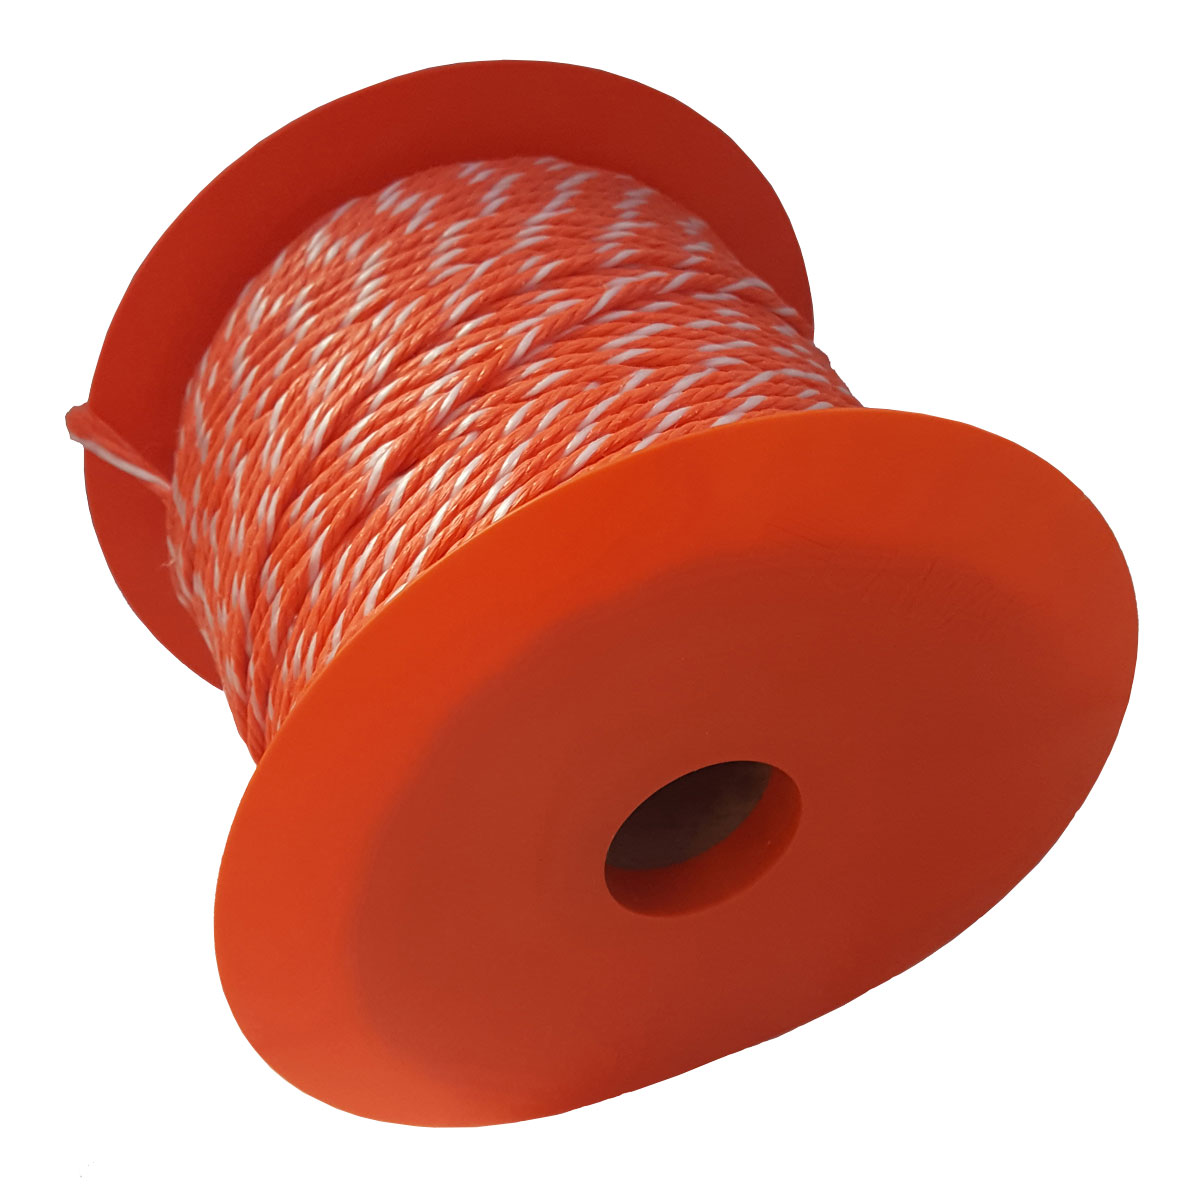 Roll of baler twine with flange